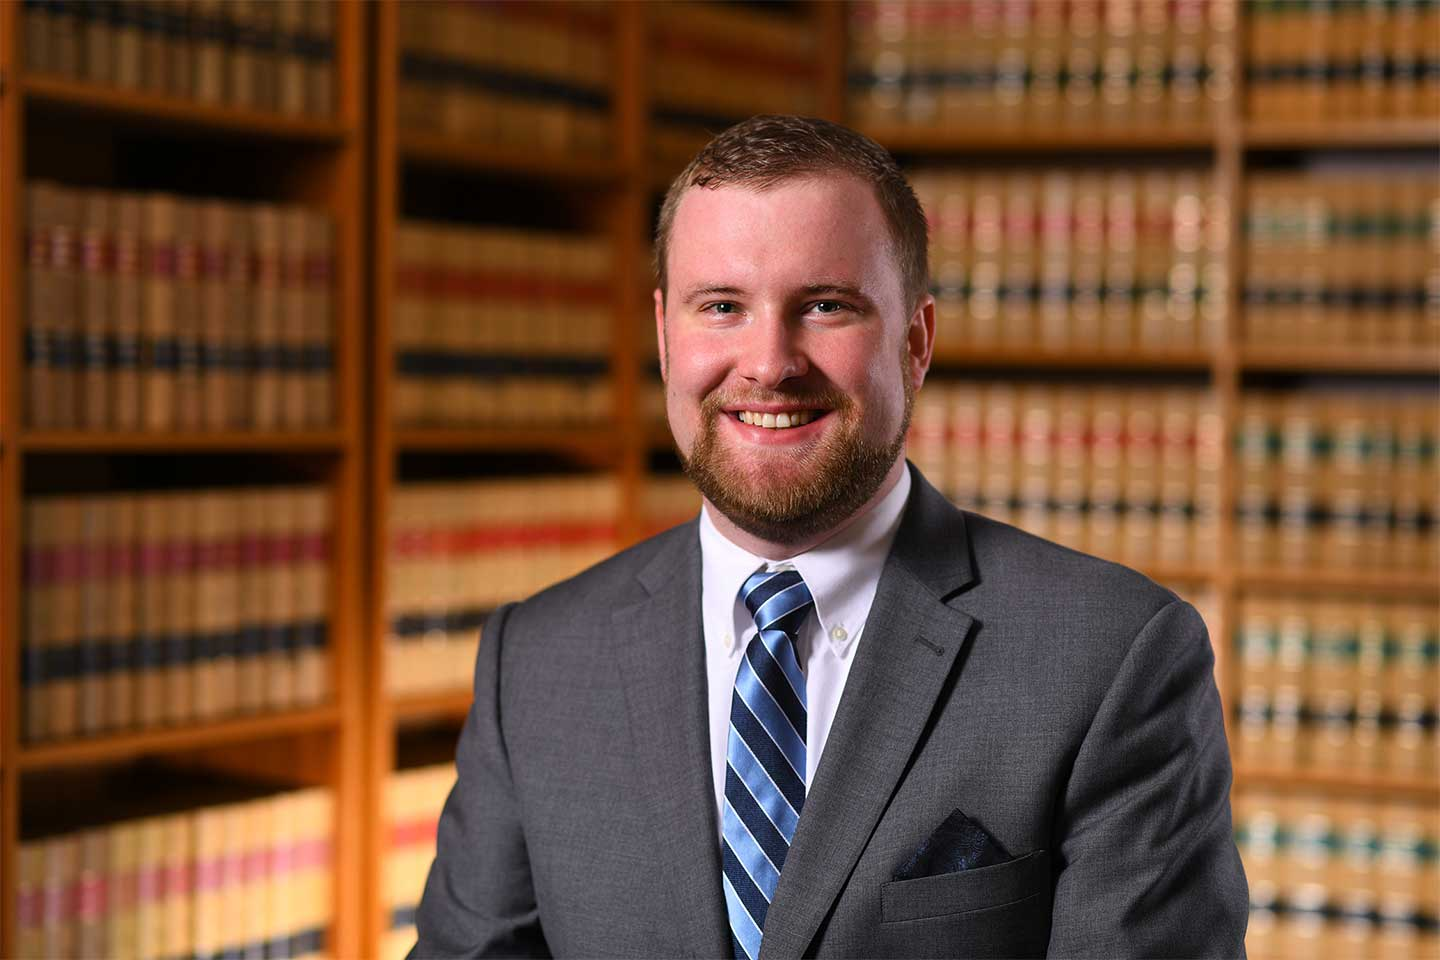 Mannix Law Firm - Salem, Oregon Business Attorneys - Joe Huddelton